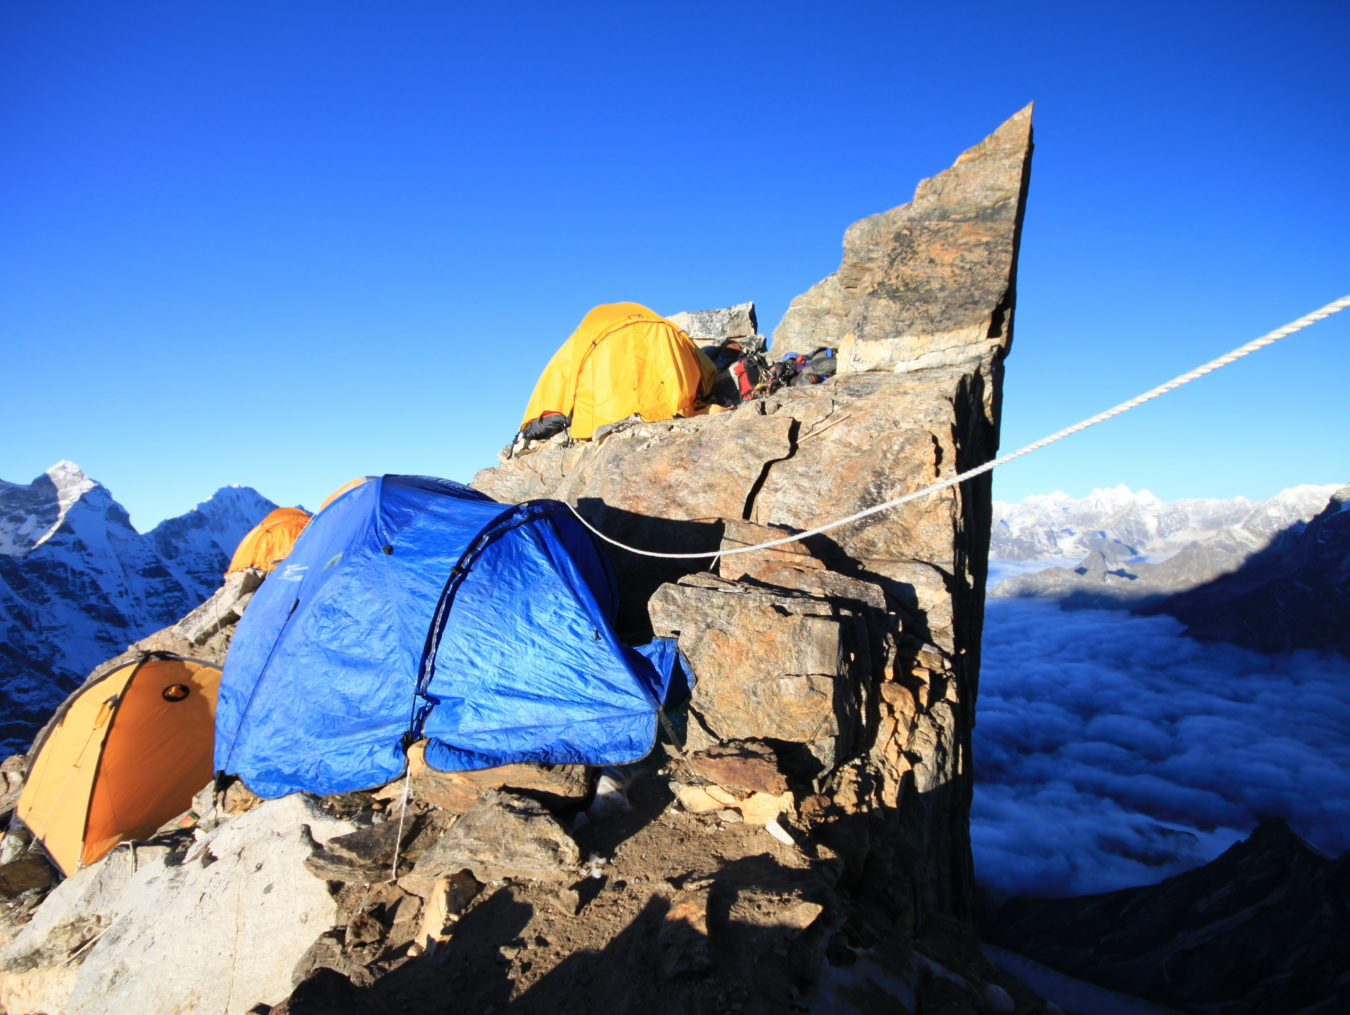 4 camping tents near a cliff of the Himalayan Mountains